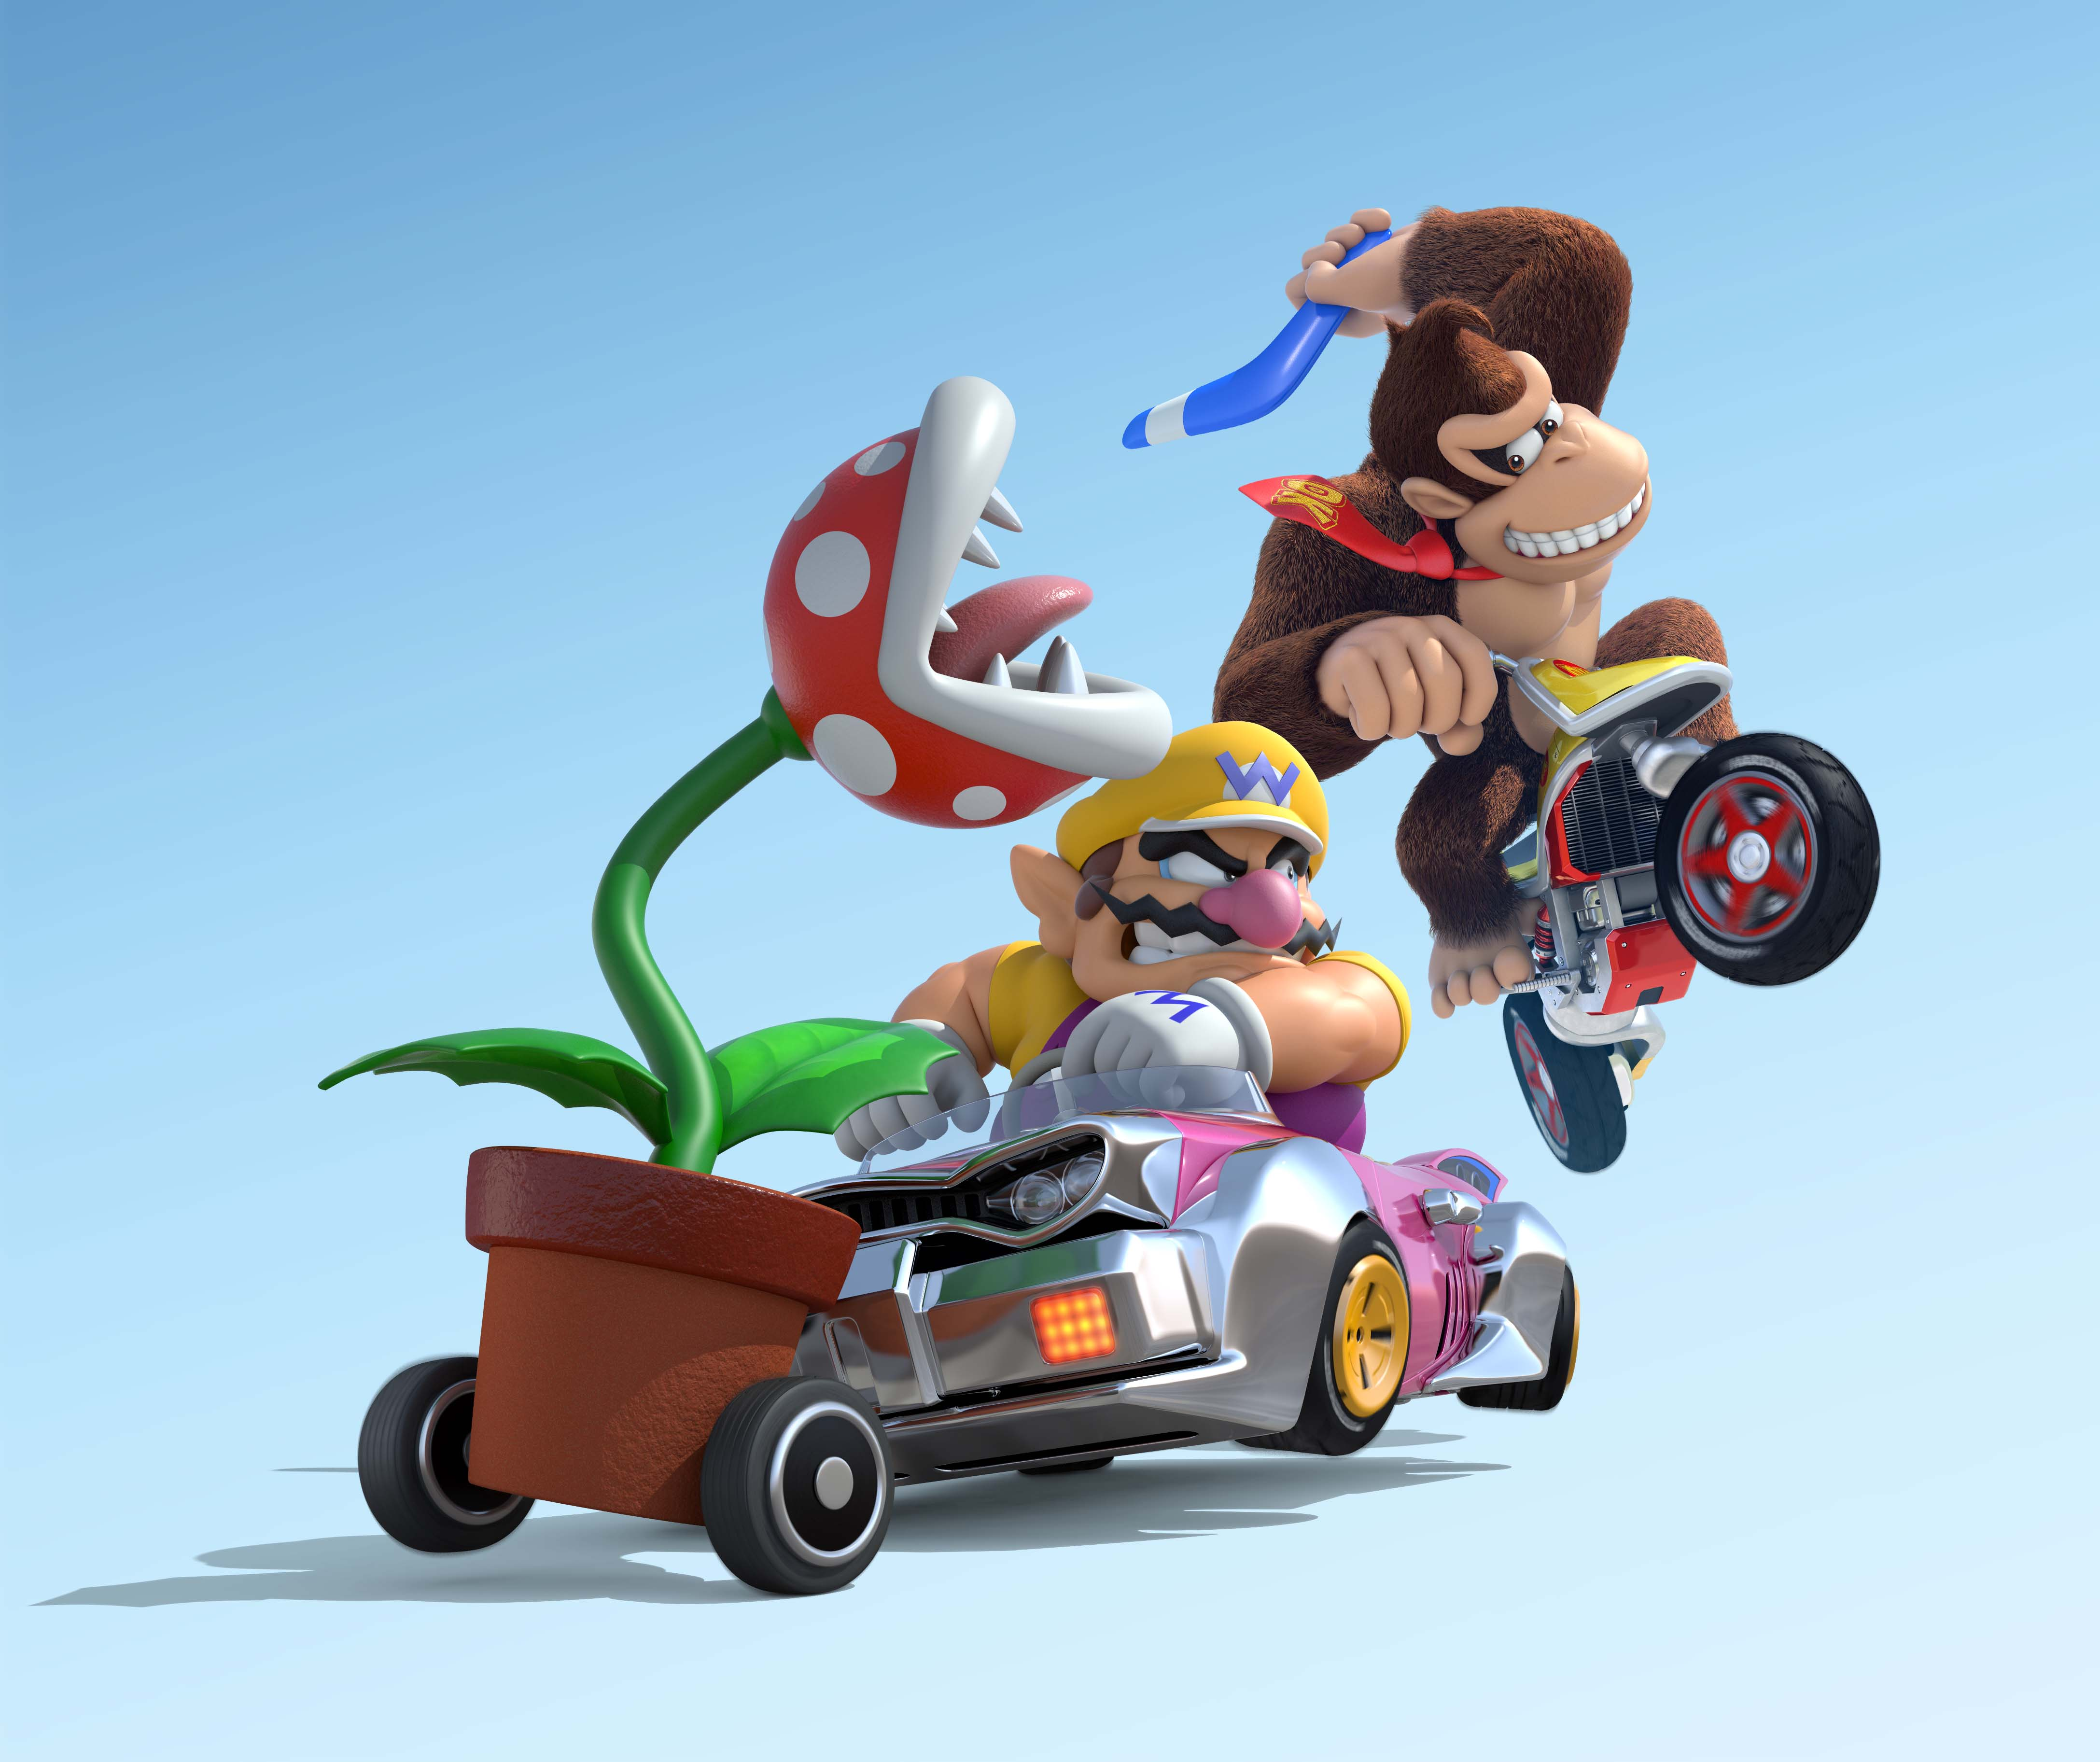 test mario kart 8 la version pour wii u blog des jeux ind pendants. Black Bedroom Furniture Sets. Home Design Ideas